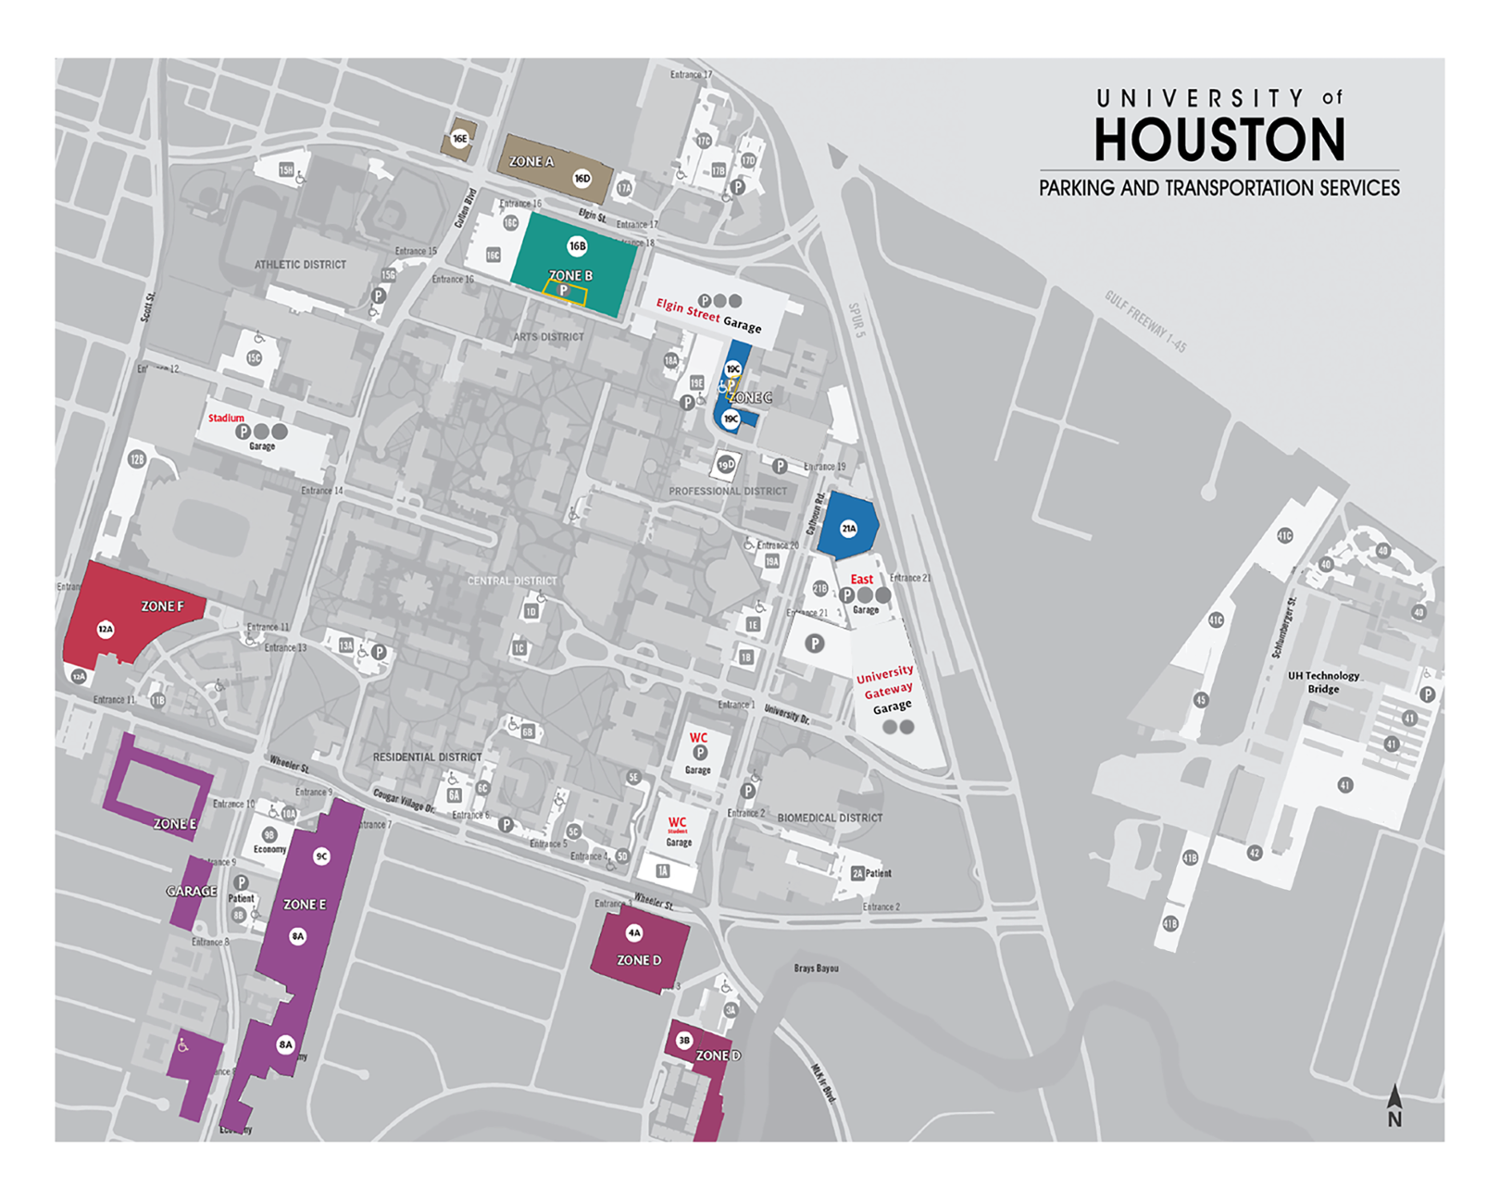 Parking Maps - University of Houston on u texas commencement, ut austin building map, u of arizona campus map, u albany campus map, u pitt campus map, university of texas map, u texas computer science, u new haven campus map, u of idaho campus map, u texas map network drive,